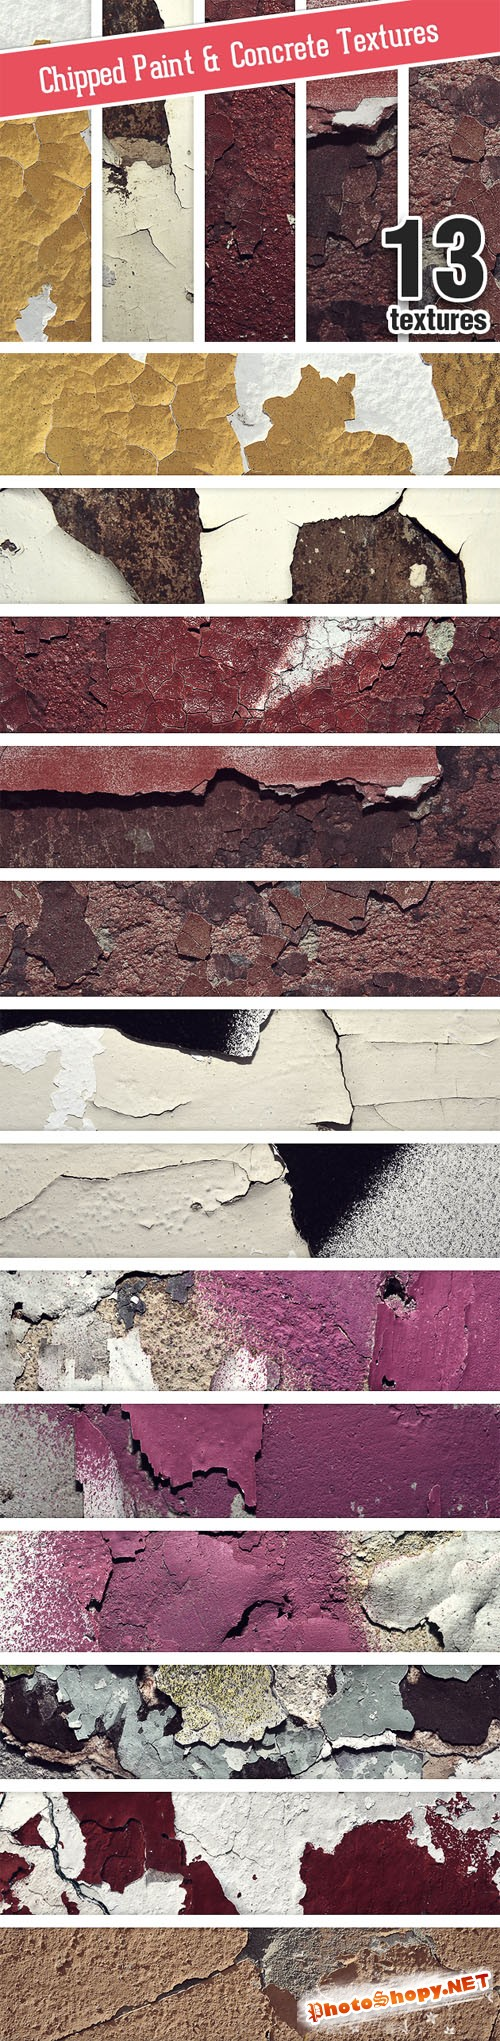 Designtnt - Chipped Paint Concrete Set 1